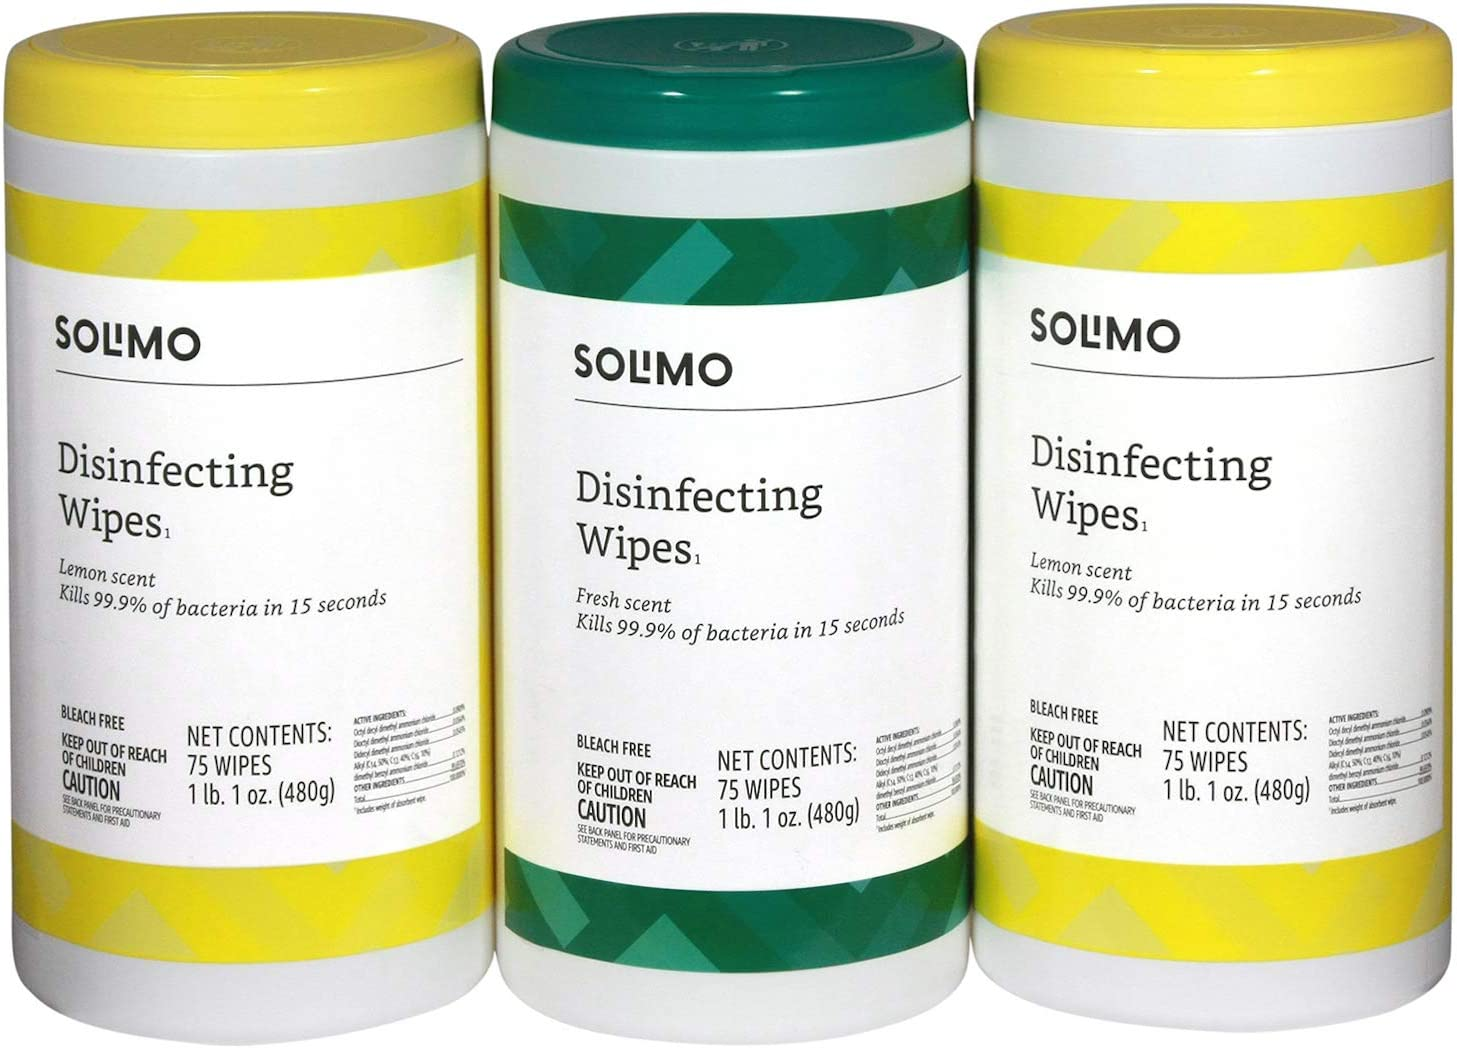 Amazon Brand - Solimo Disinfecting Wipes, Lemon Scent & Fresh Scent, 75 Wipes Each (Pack of 3)